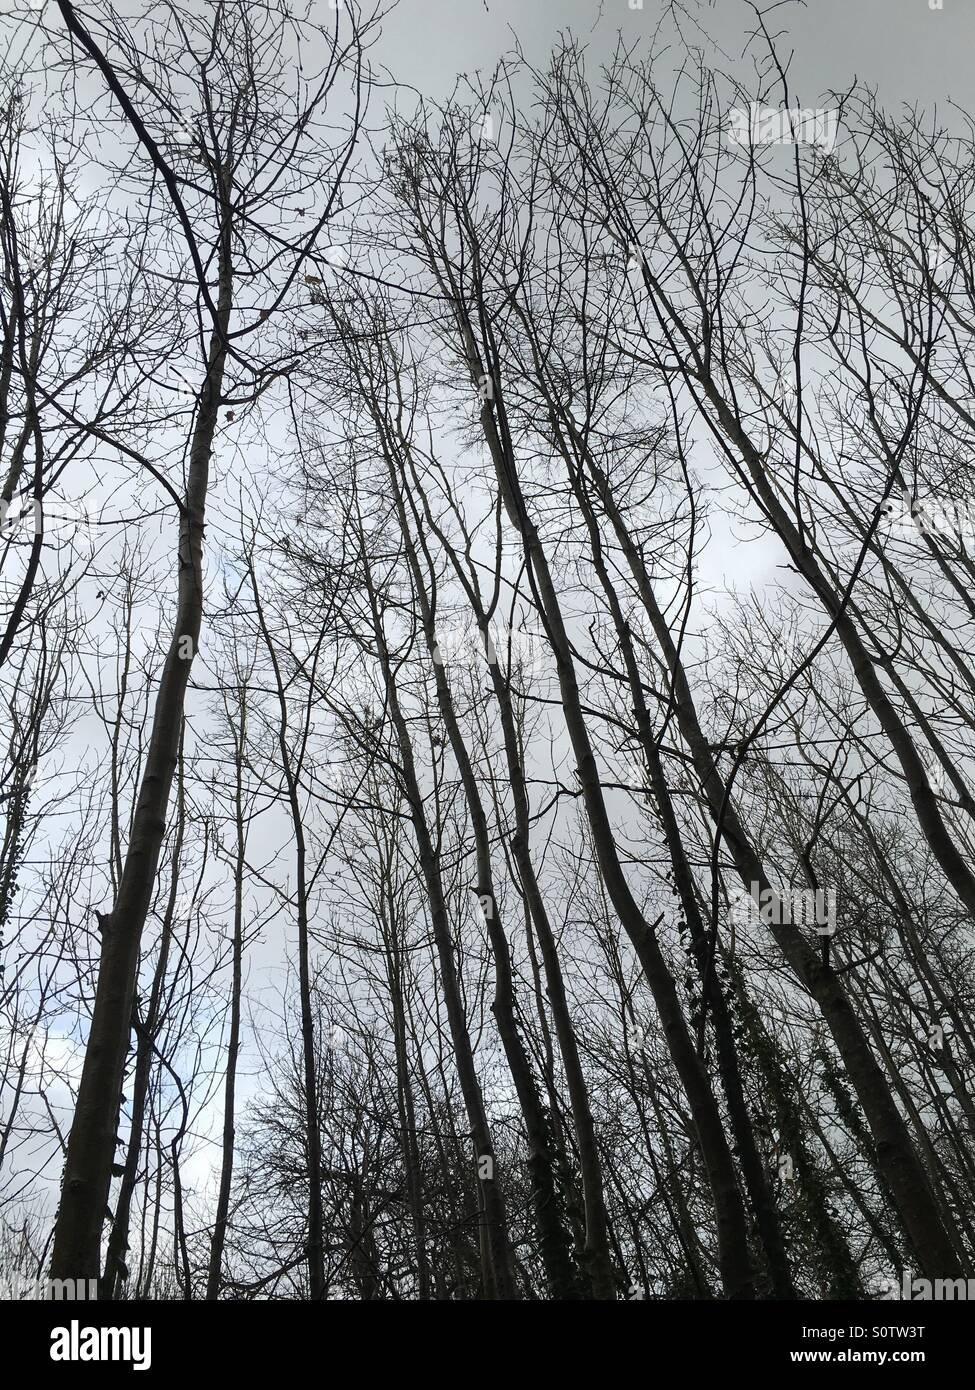 Silhouettes of woodland trees reaching into the sky - Stock Image